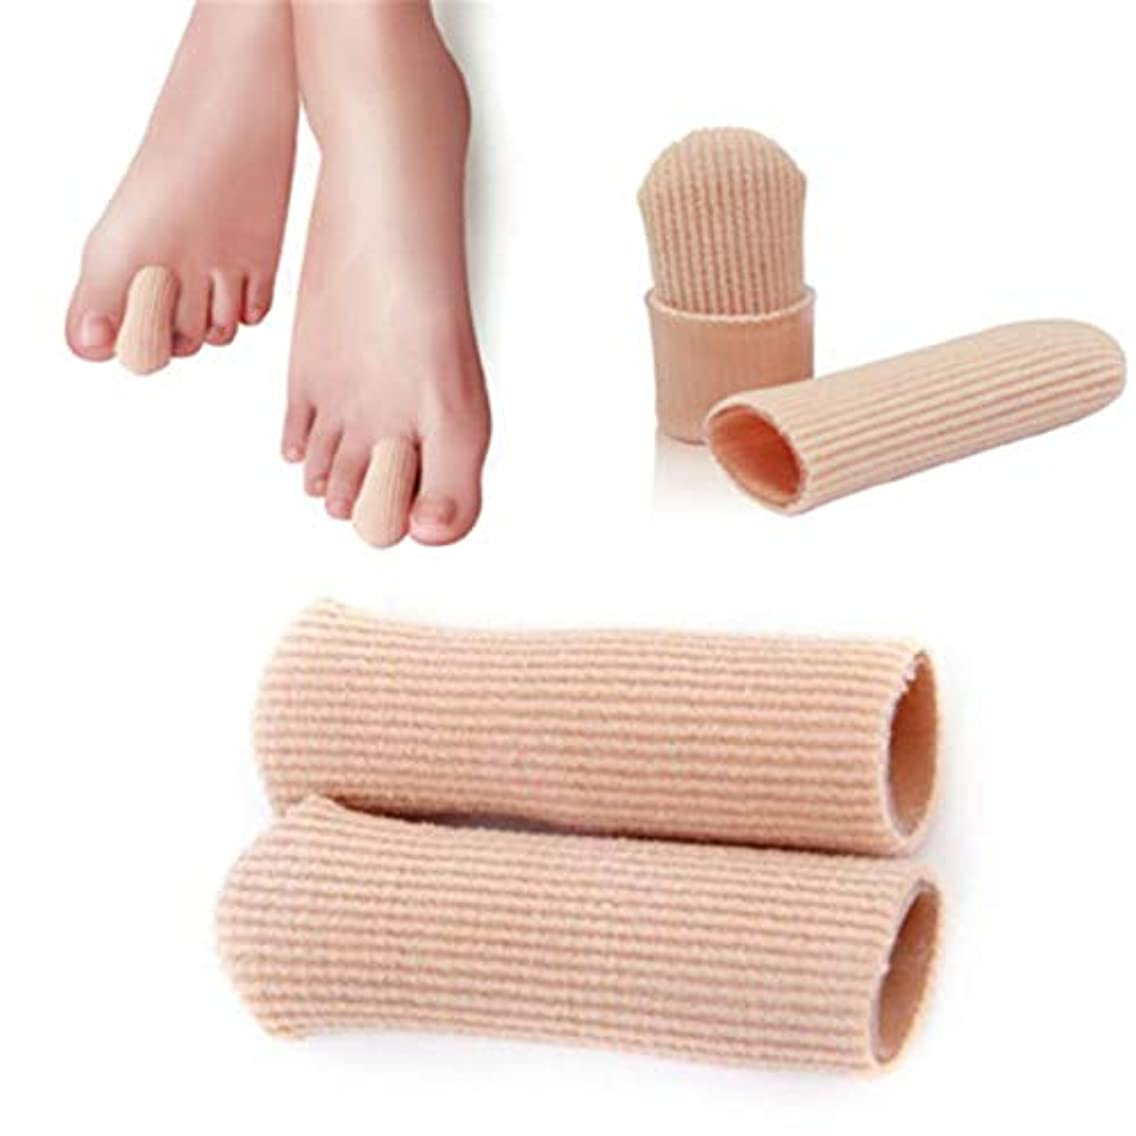 永久振幅解決するB-035 SEBS Toe Tube Toe Caps Toe Cushions Foot Corns Remover Finger Toe Protect Body Massager Insoles Health Care